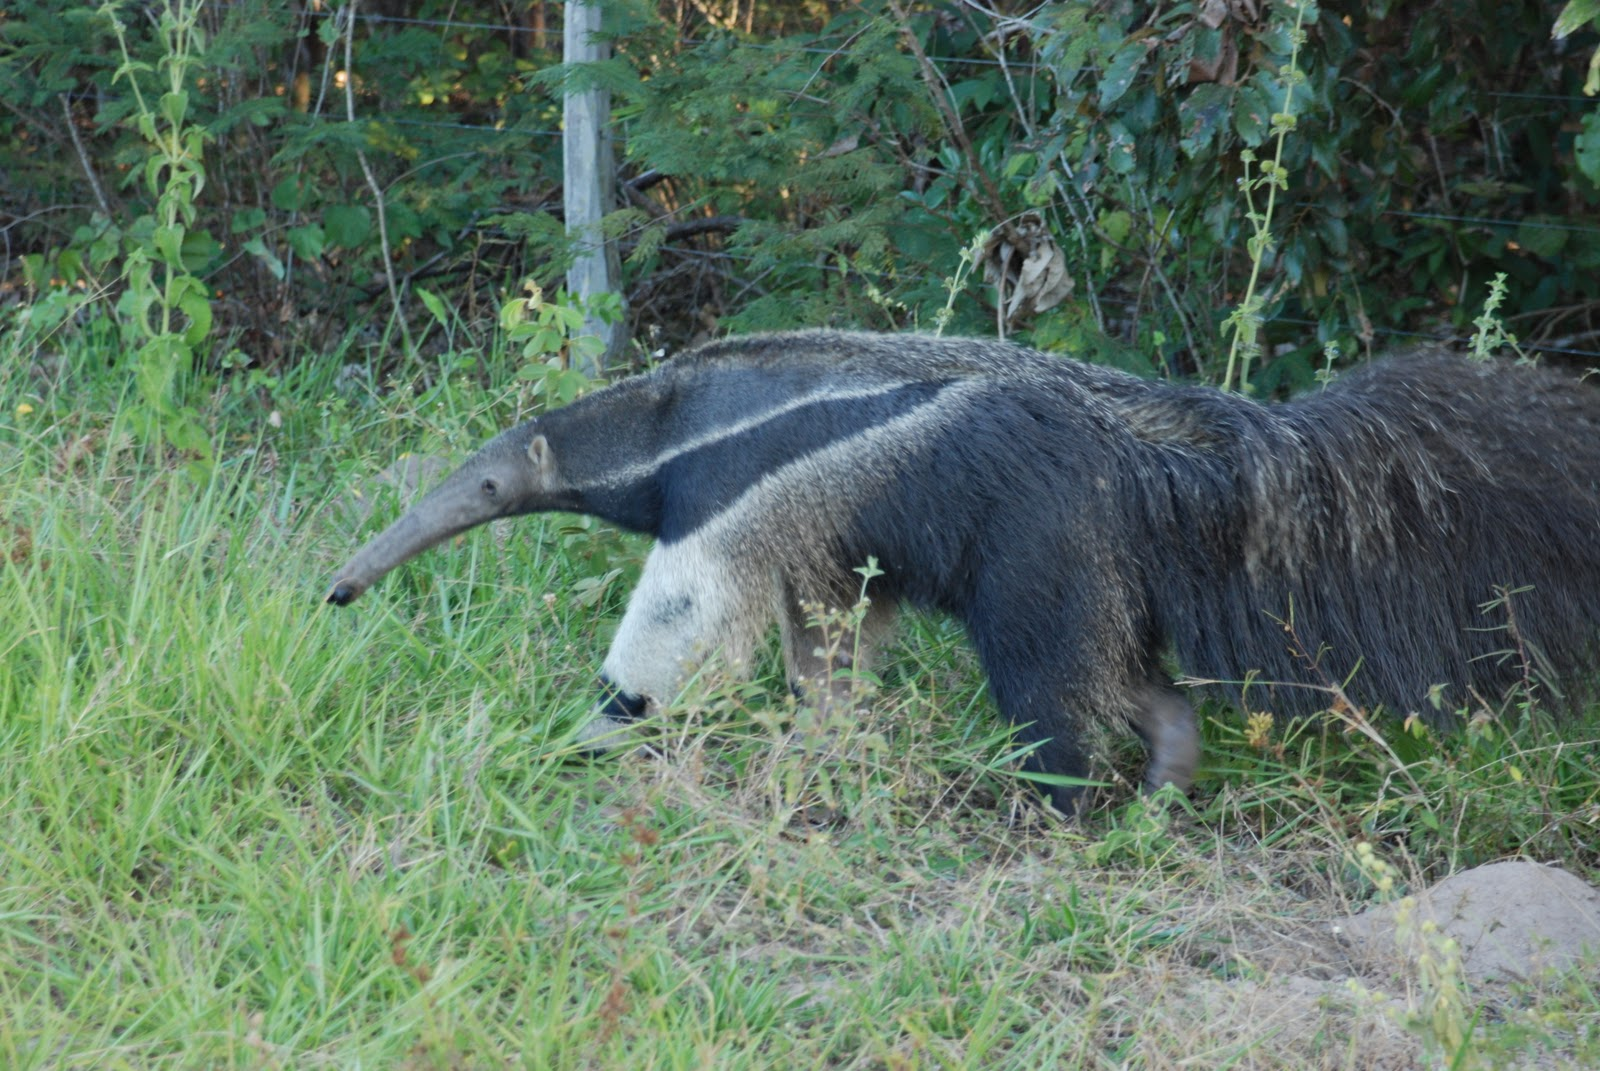 Giant Anteater in the Brazilian Pantanal